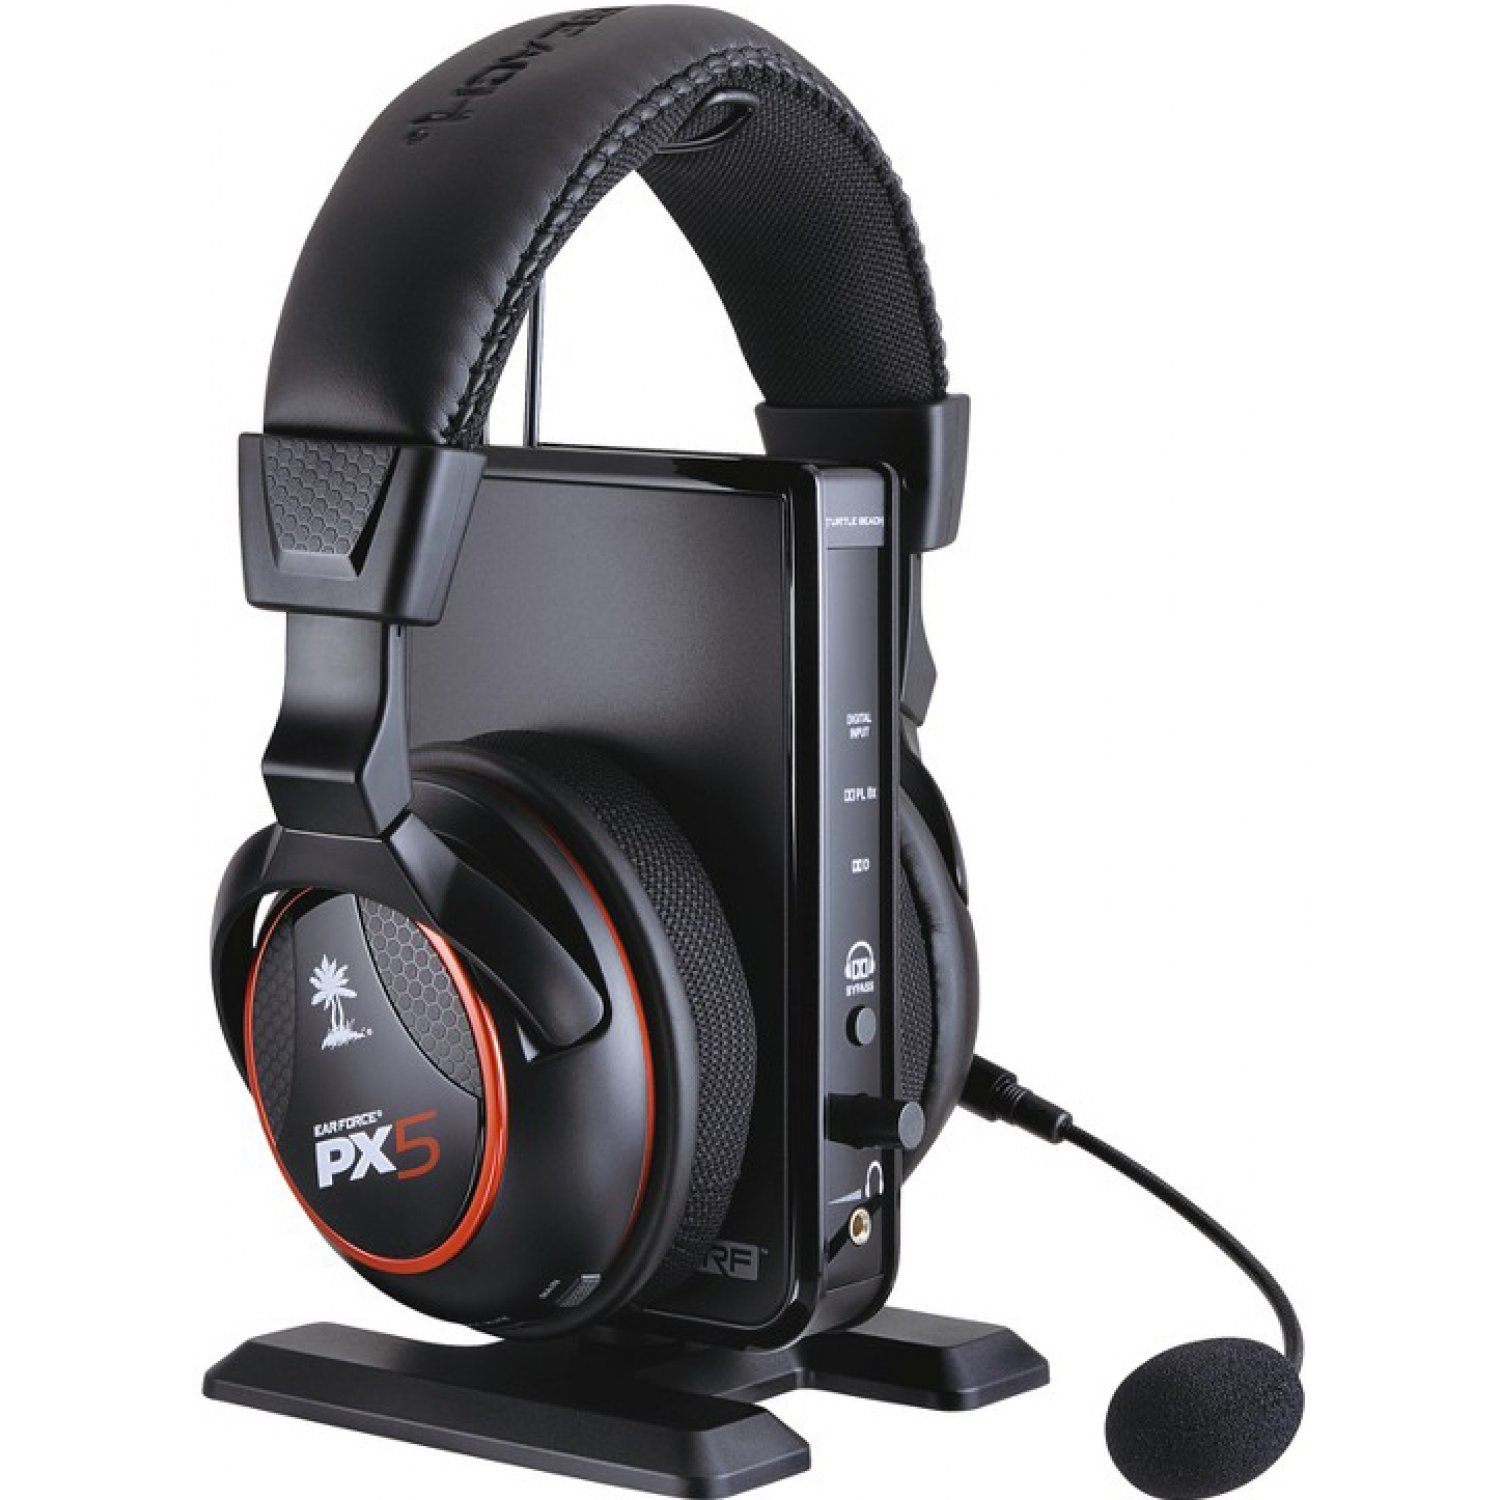 Turtle Beach Wireless Headset Pc Wire Center Circuitdiagram Basiccircuit Usbturningserialcircuitdiagramhtml Ear Force Px5 Bluetooth Ps3 And Xbox360 Rh Play Asia Com